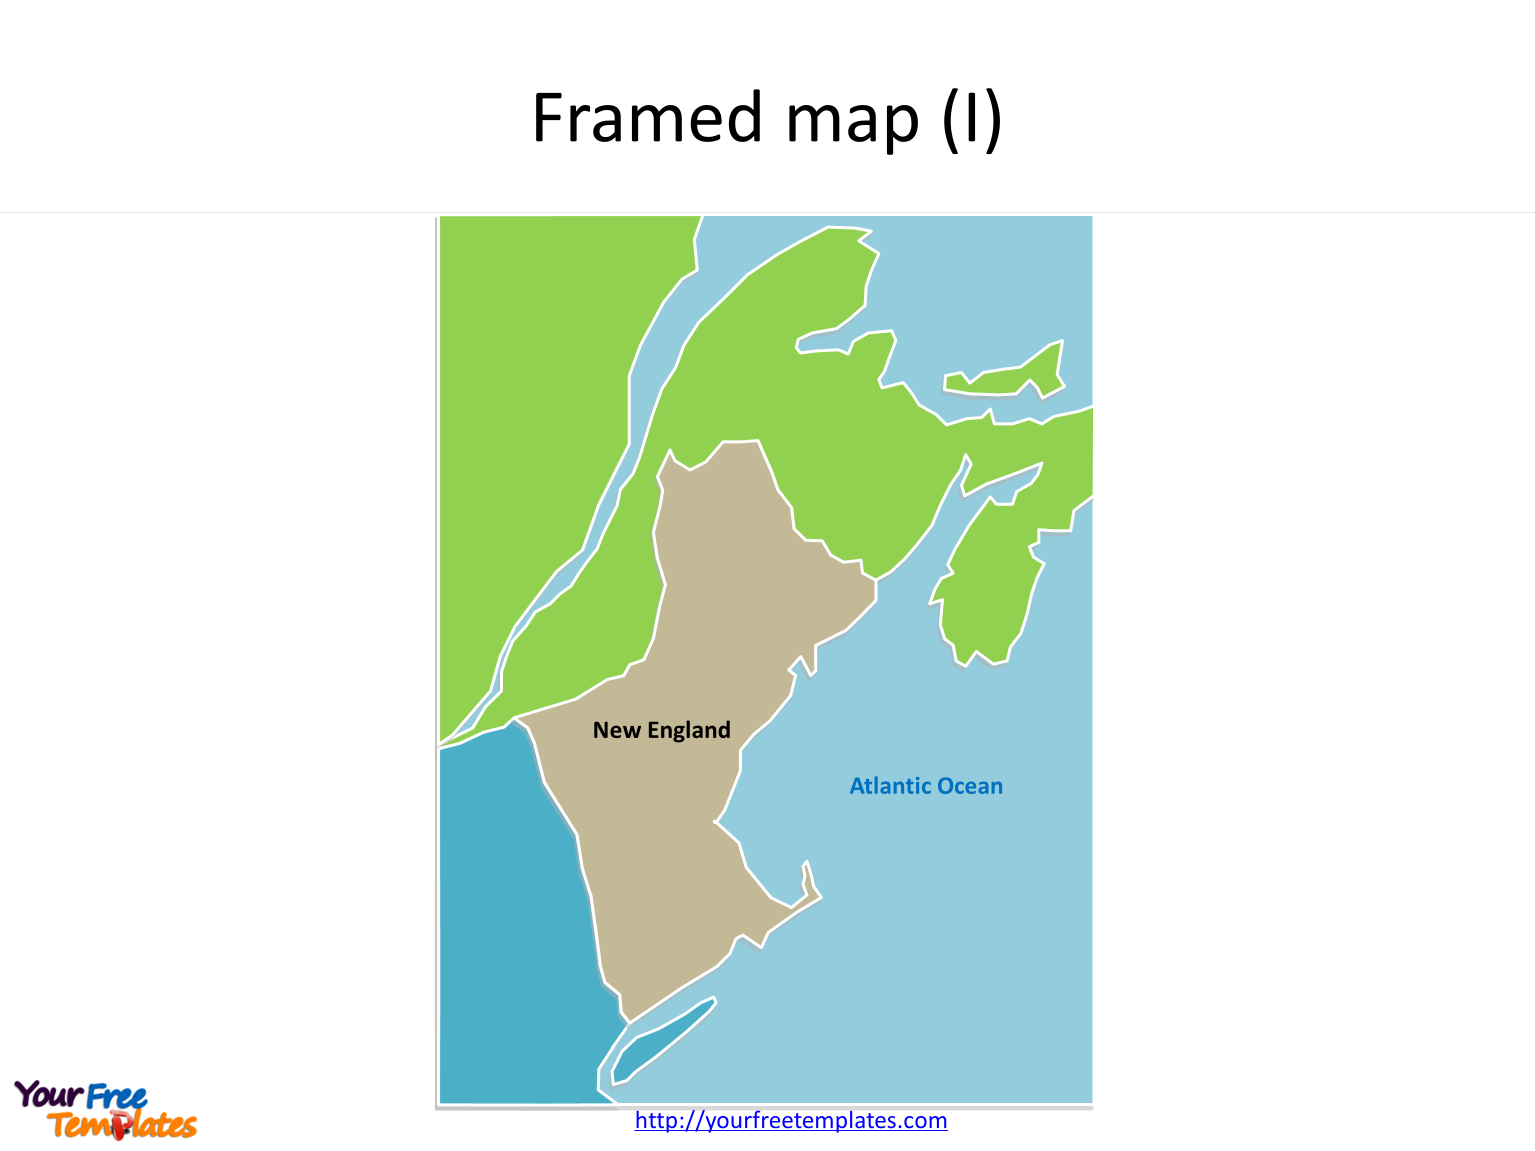 New England Framed Outline map for New England states on the US map PowerPoint templates